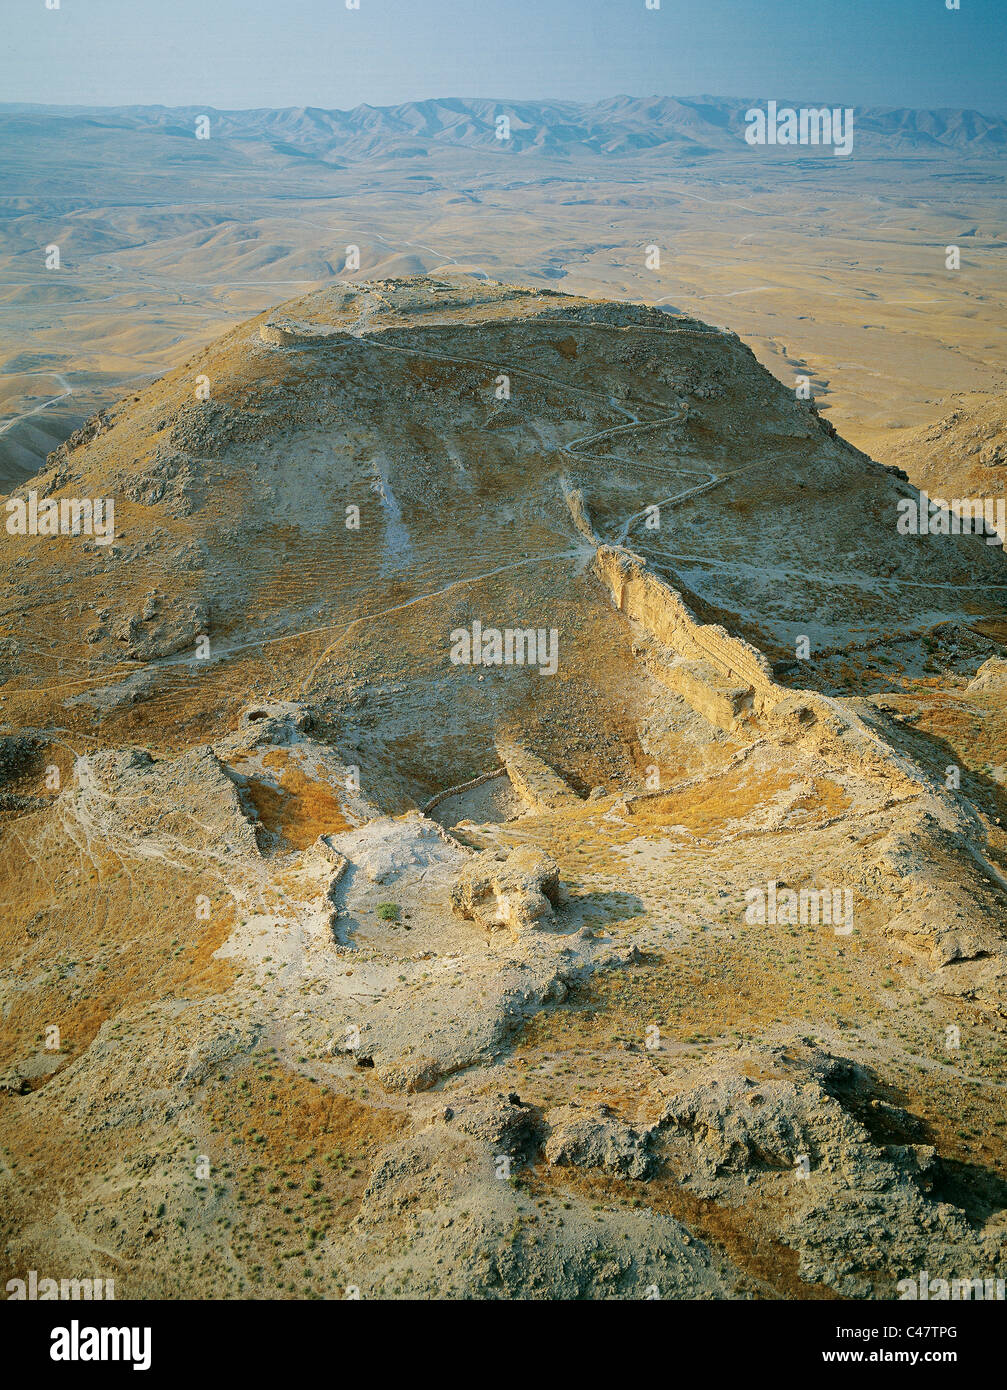 Aerial view of the remains of ...